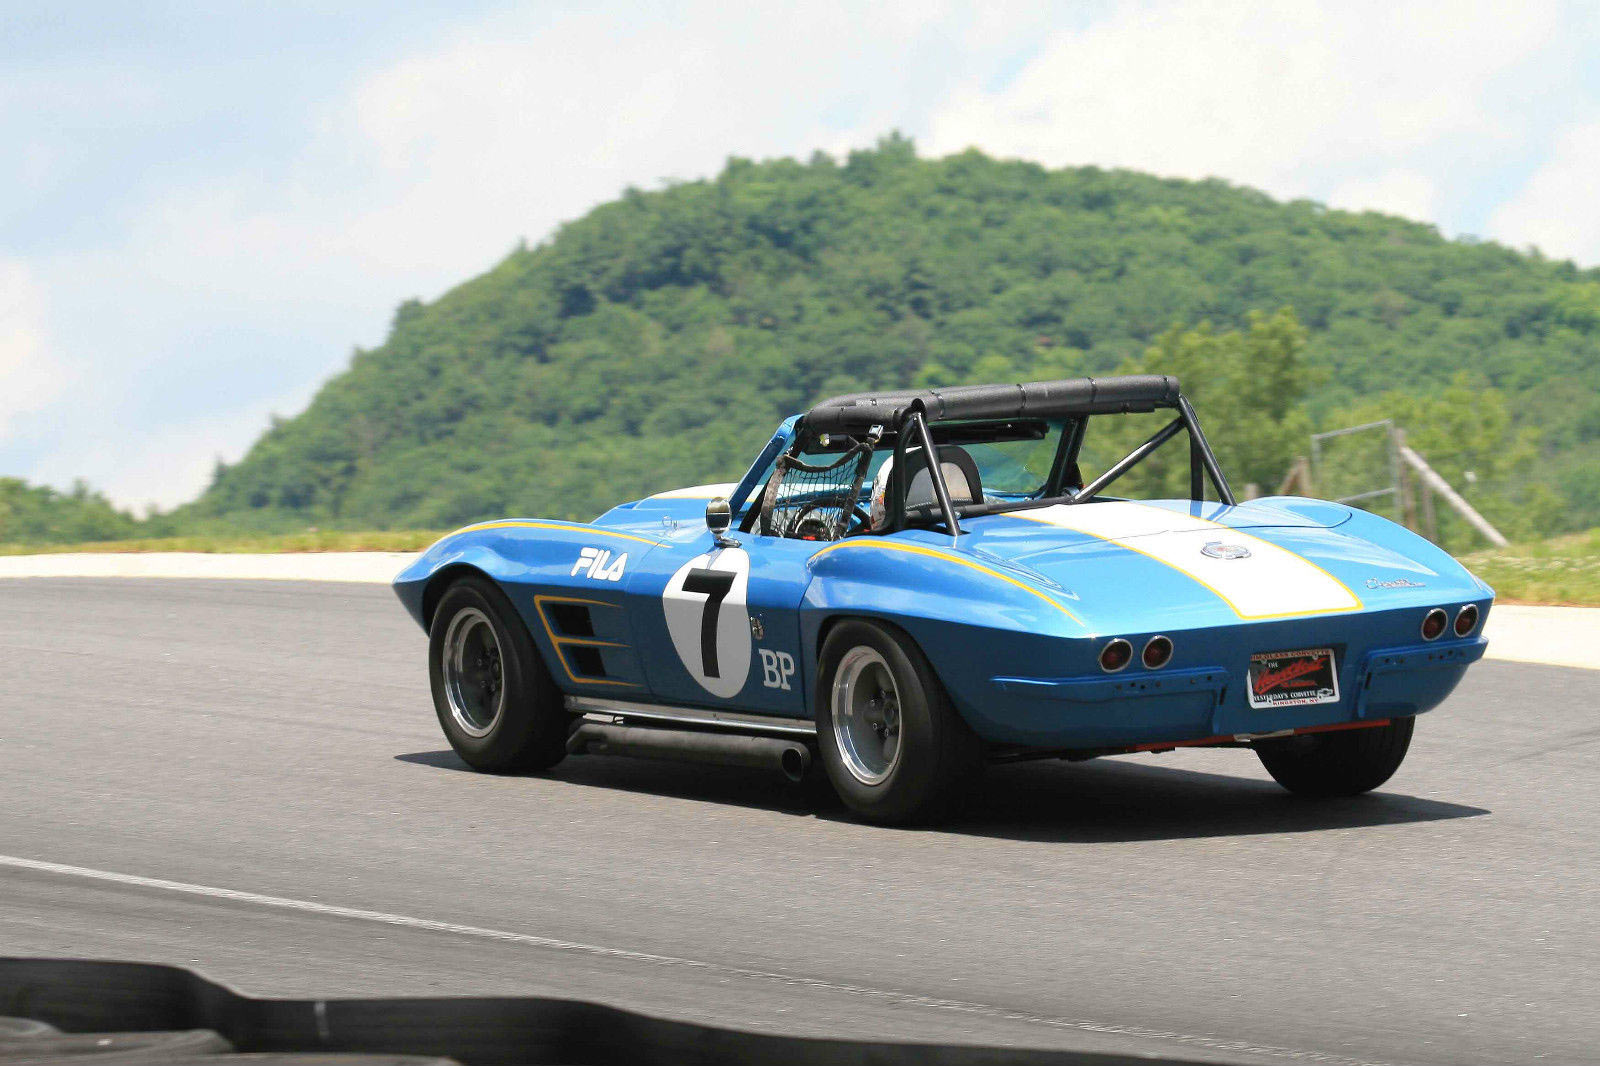 Corvettes on eBay: Vintage 1964 Corvette Racecar - Corvette: Sales ...